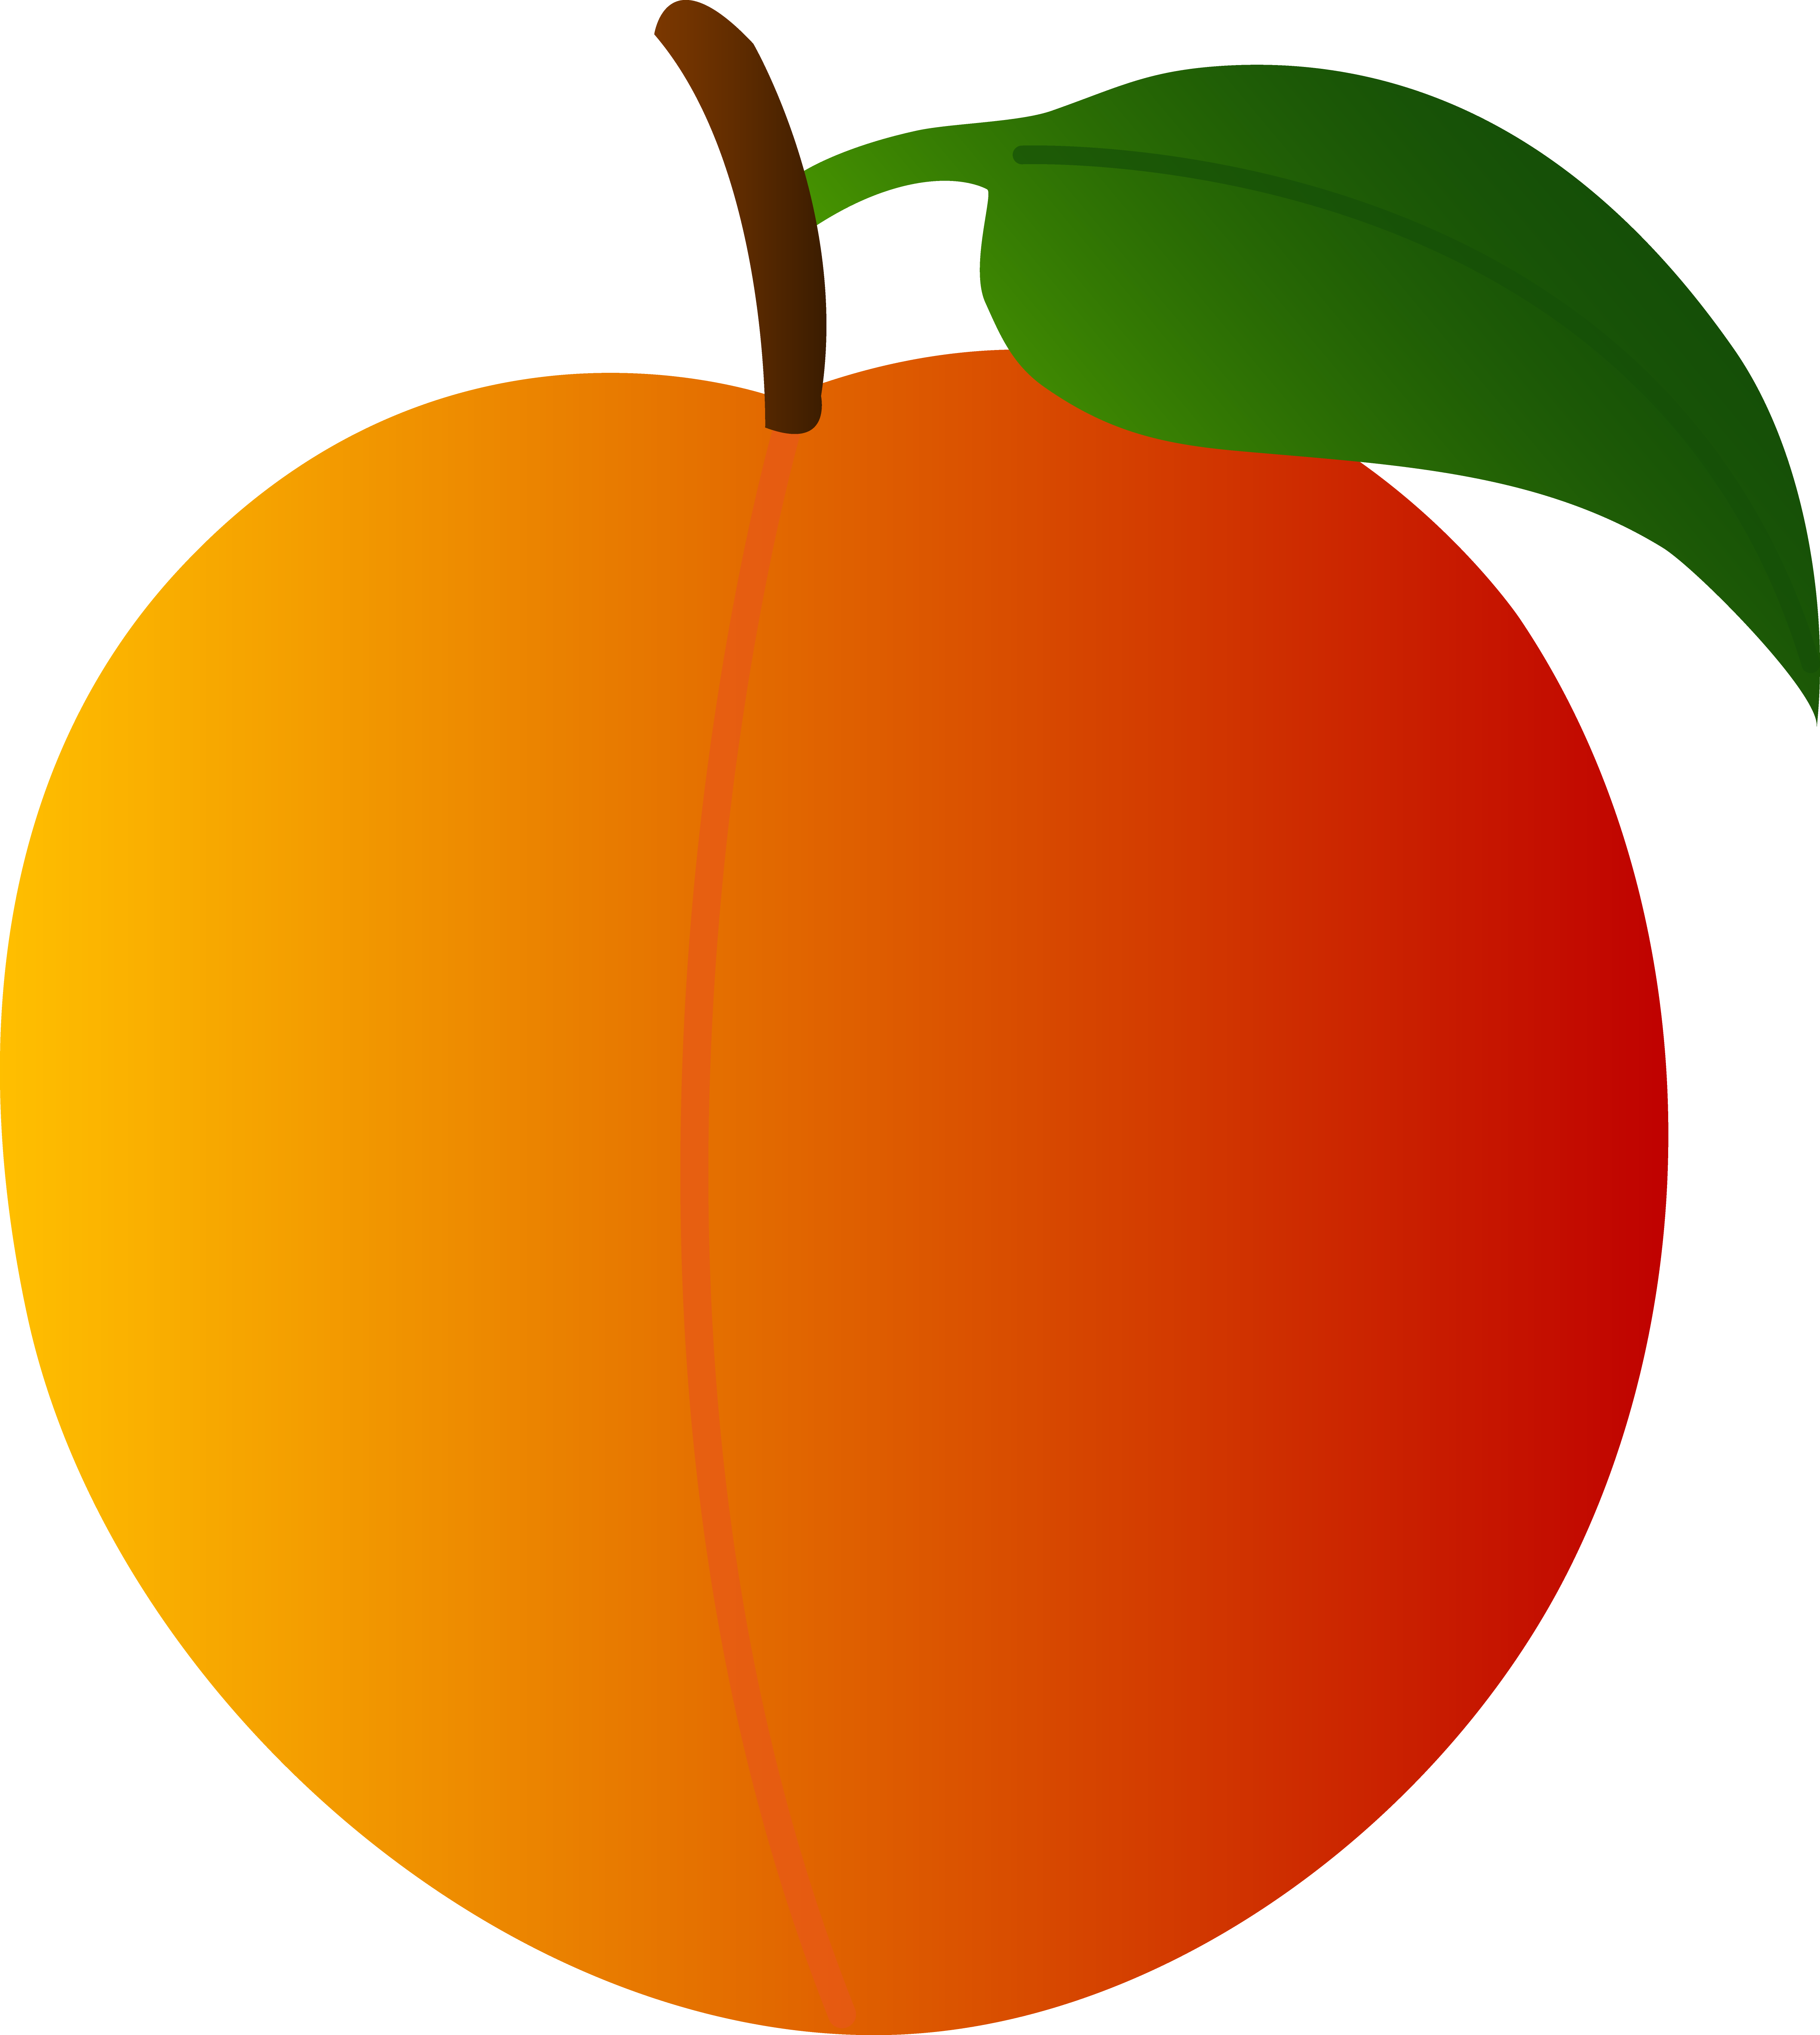 jpg free download Peach clipart. Clip art black and